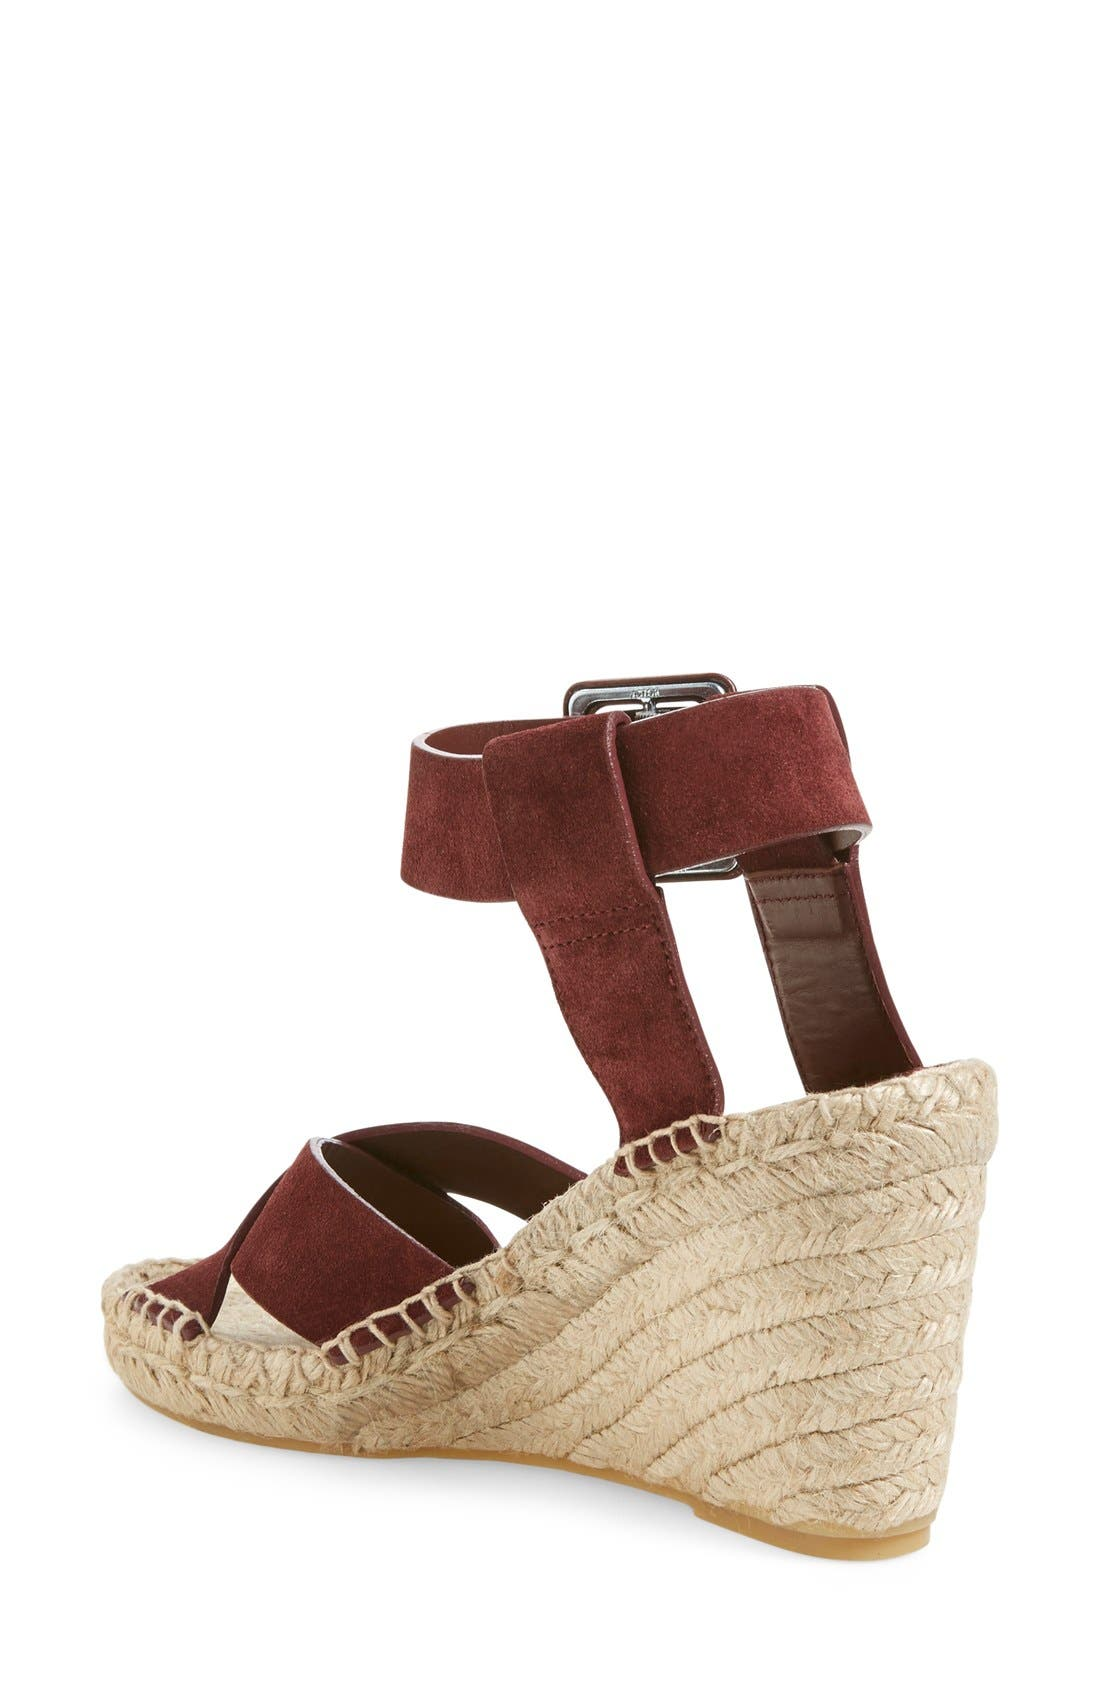 'Stefania' Espadrille Wedge Sandal,                             Alternate thumbnail 2, color,                             200